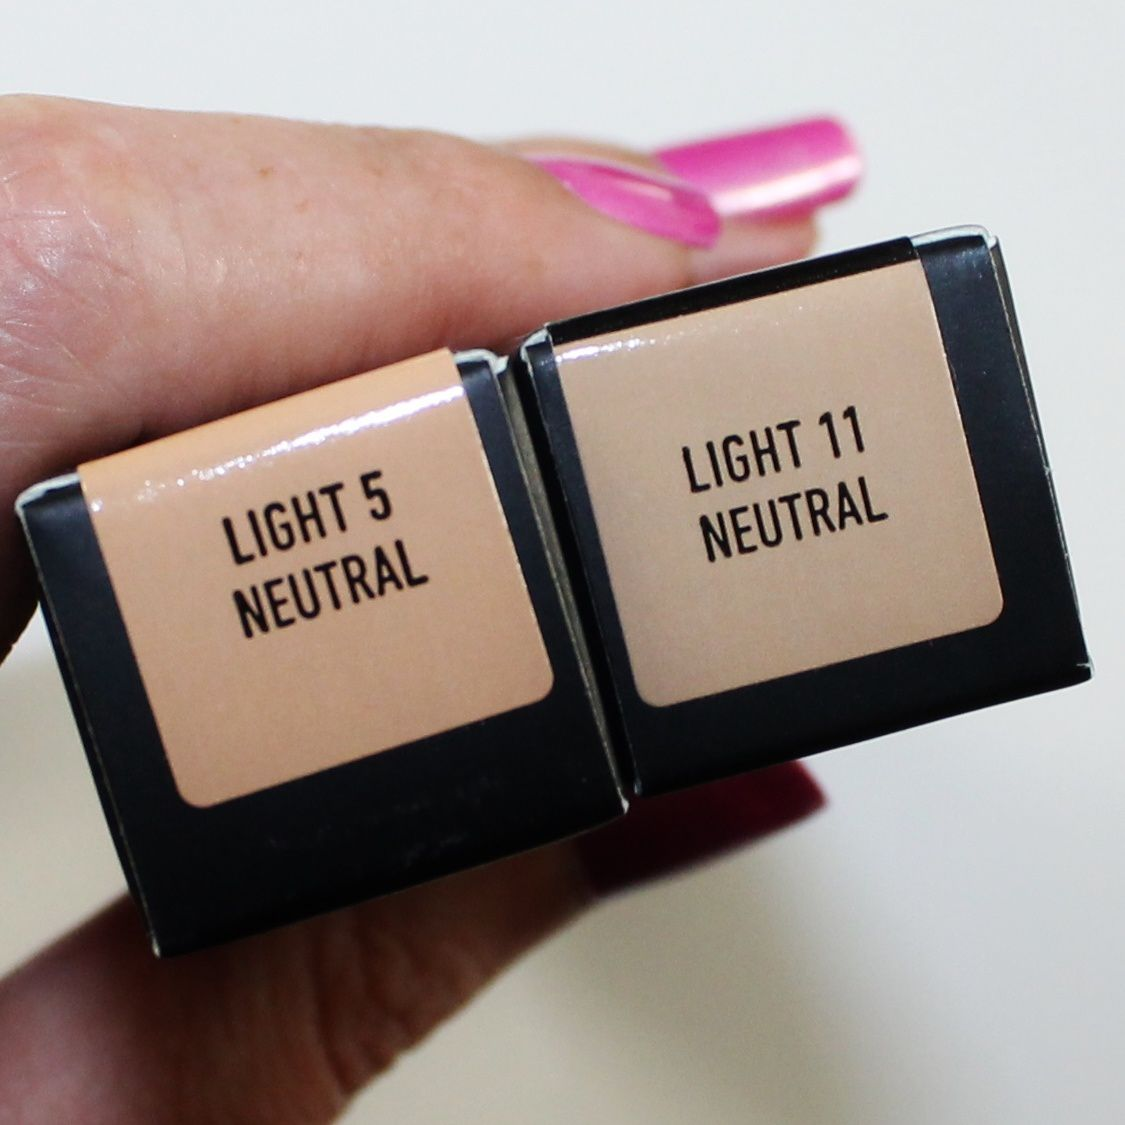 Kat Von D Lock-It Concealer Crème (Light 5 (fair cashmere with neutral undertone) on the right  and Light 11 (light blonde with neutral undertone) on the left.